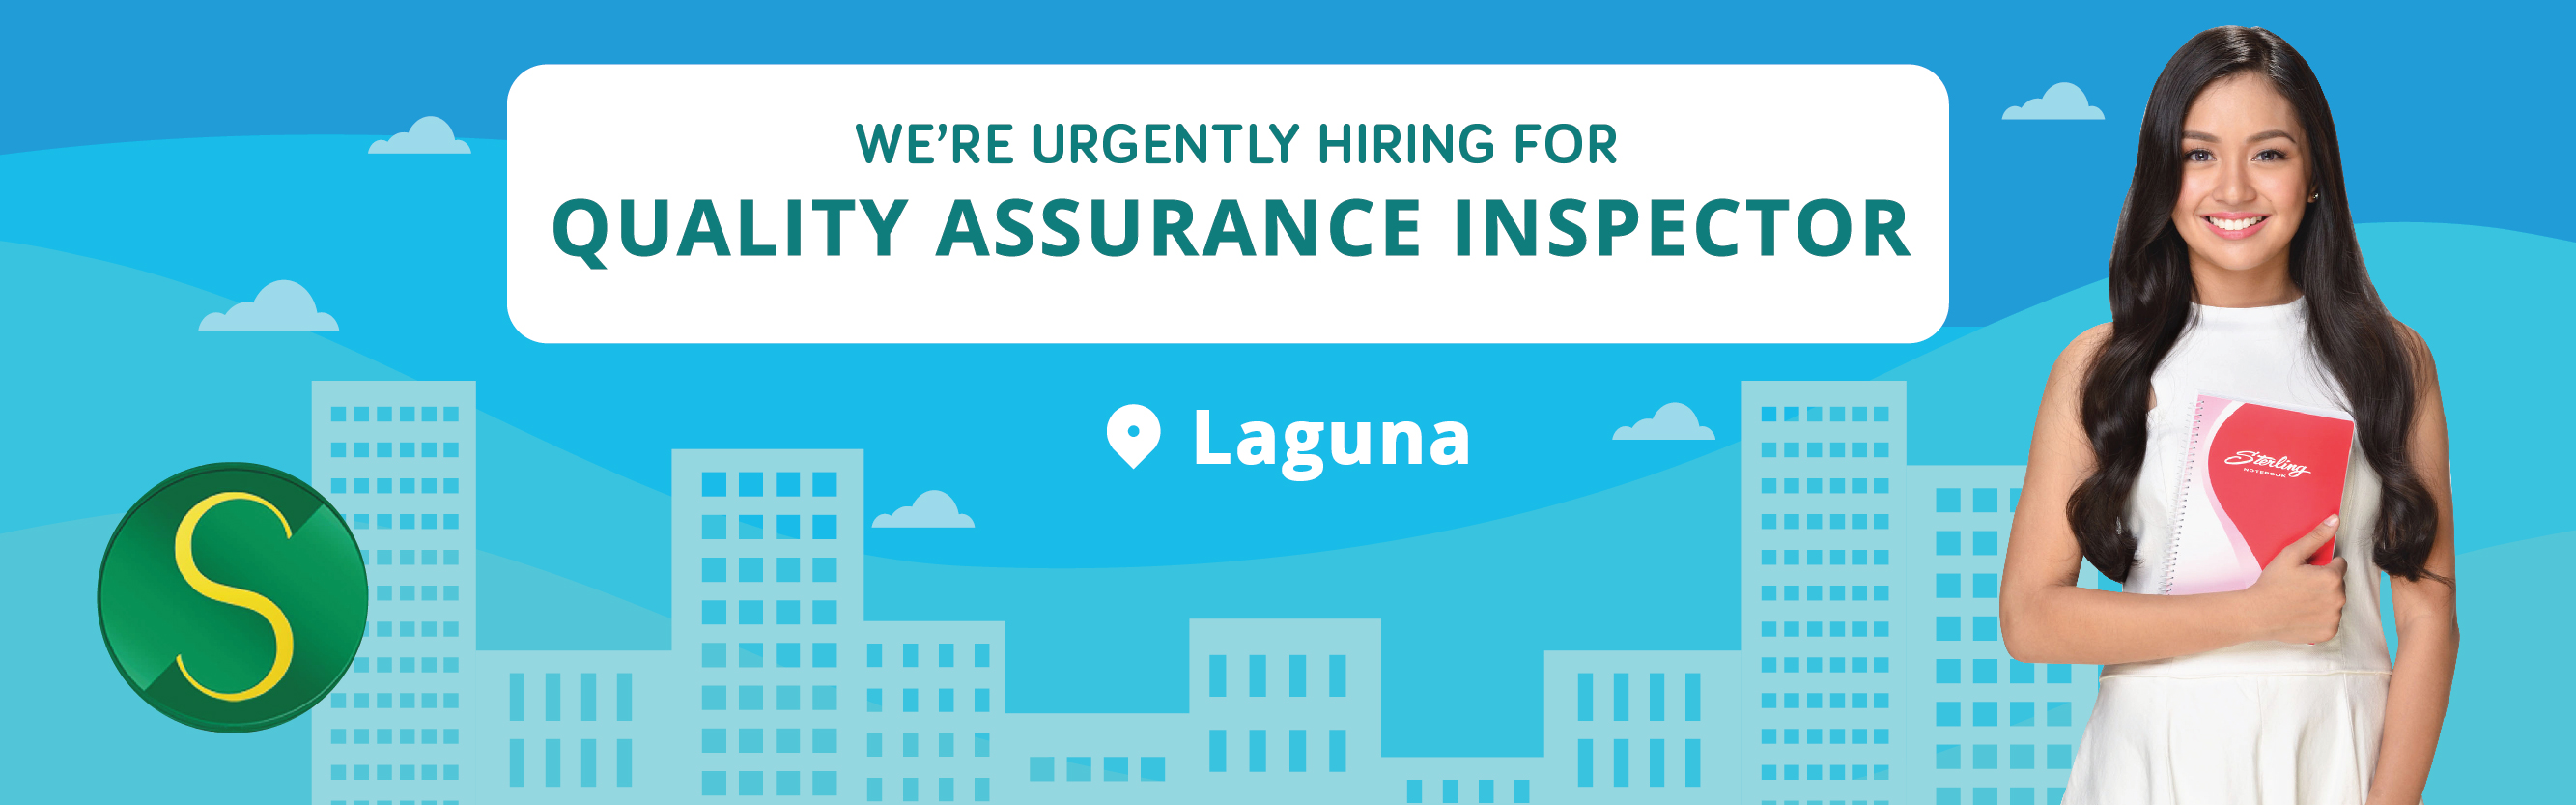 Quality Assurance Inspector (laguna Based) from Sterling Paper Group of Com...